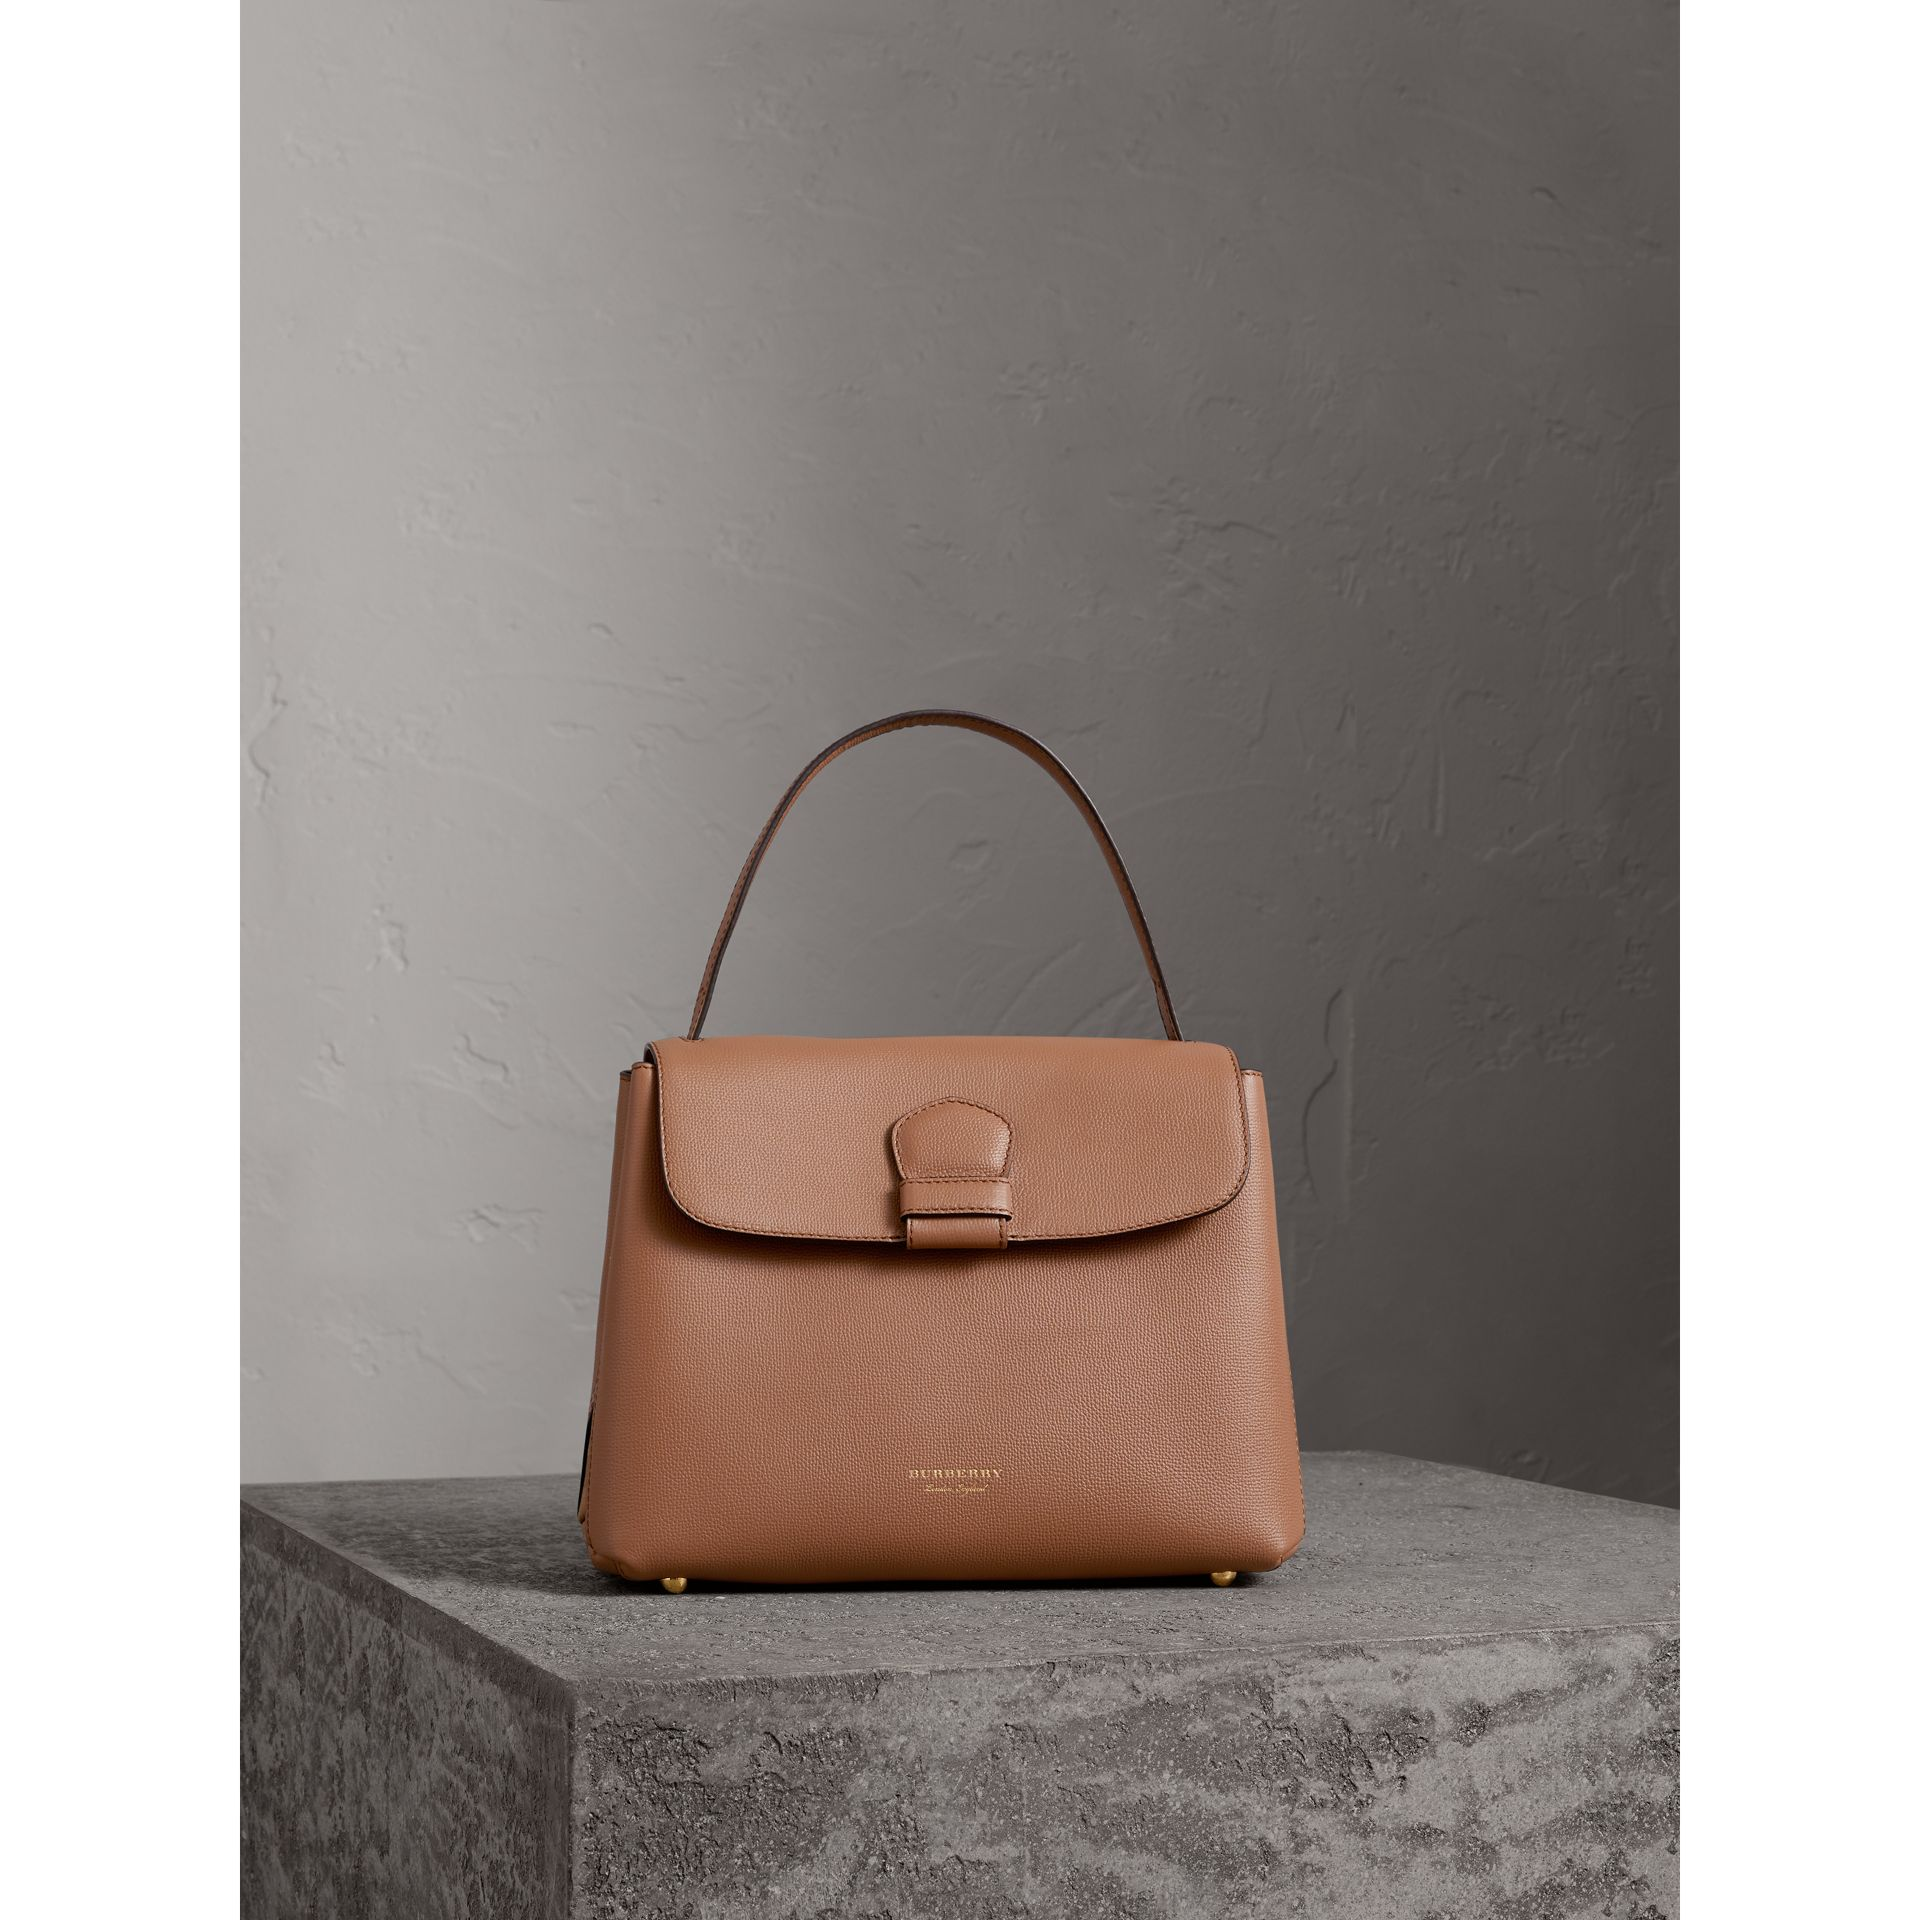 Medium Grainy Leather and House Check Tote Bag in Dark Sand - Women | Burberry - gallery image 6